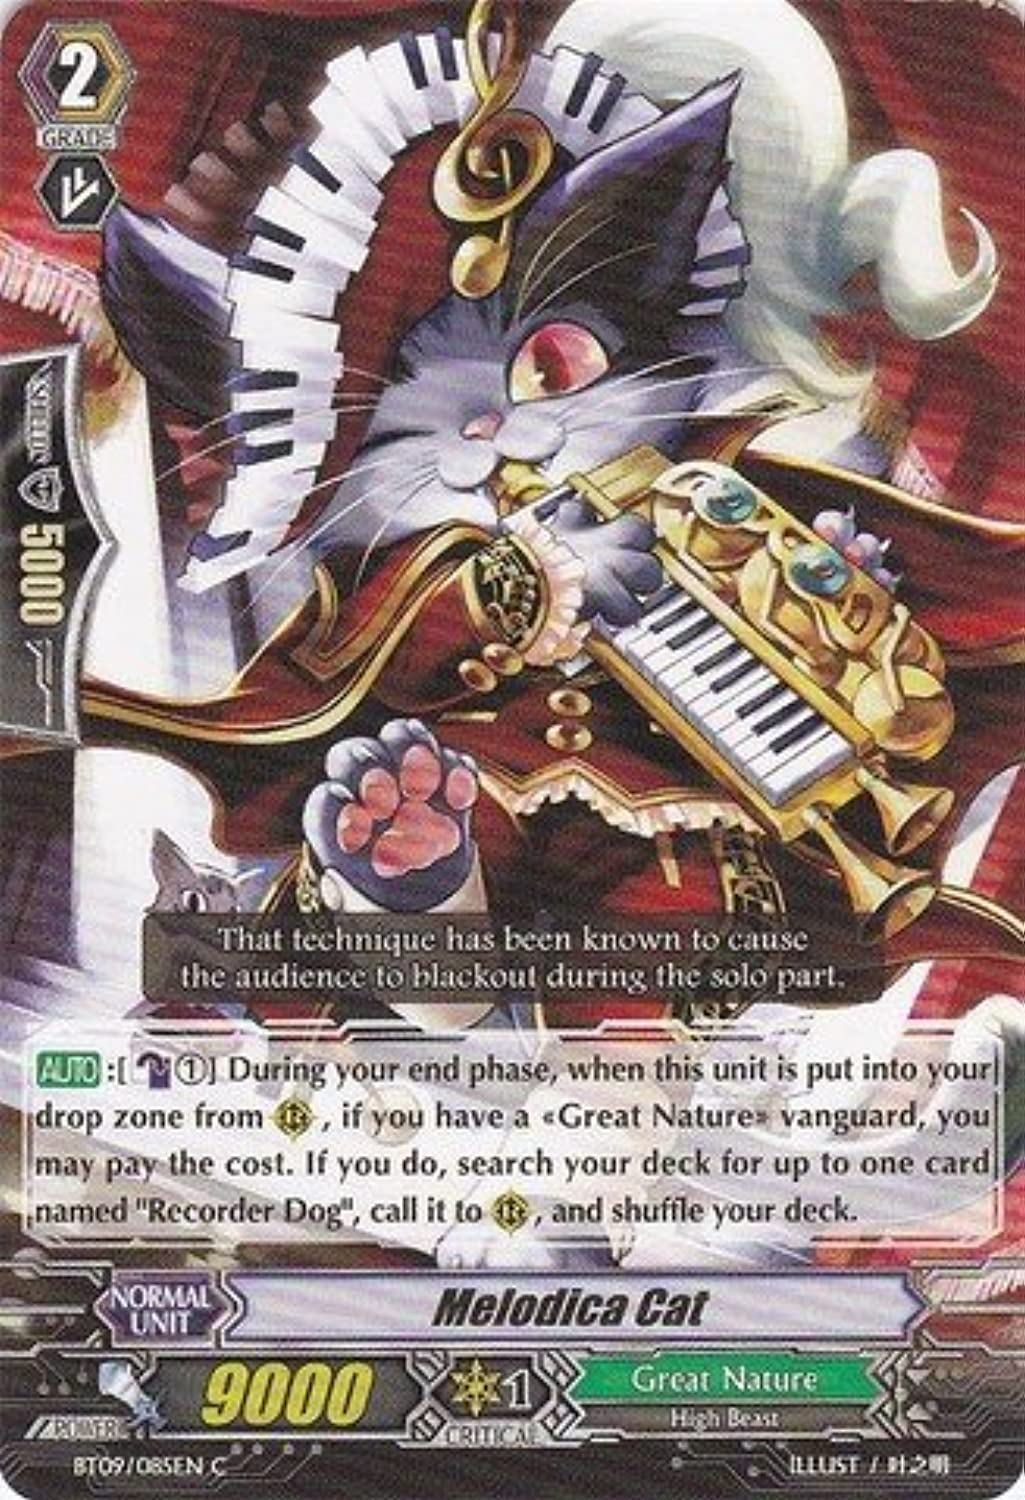 Cardfight   Vanguard TCG - Melodica Cat (BT09 085EN) - Booster Set 9  Clash of the Knights & Dragons by Cardfight   Vanguard TCG